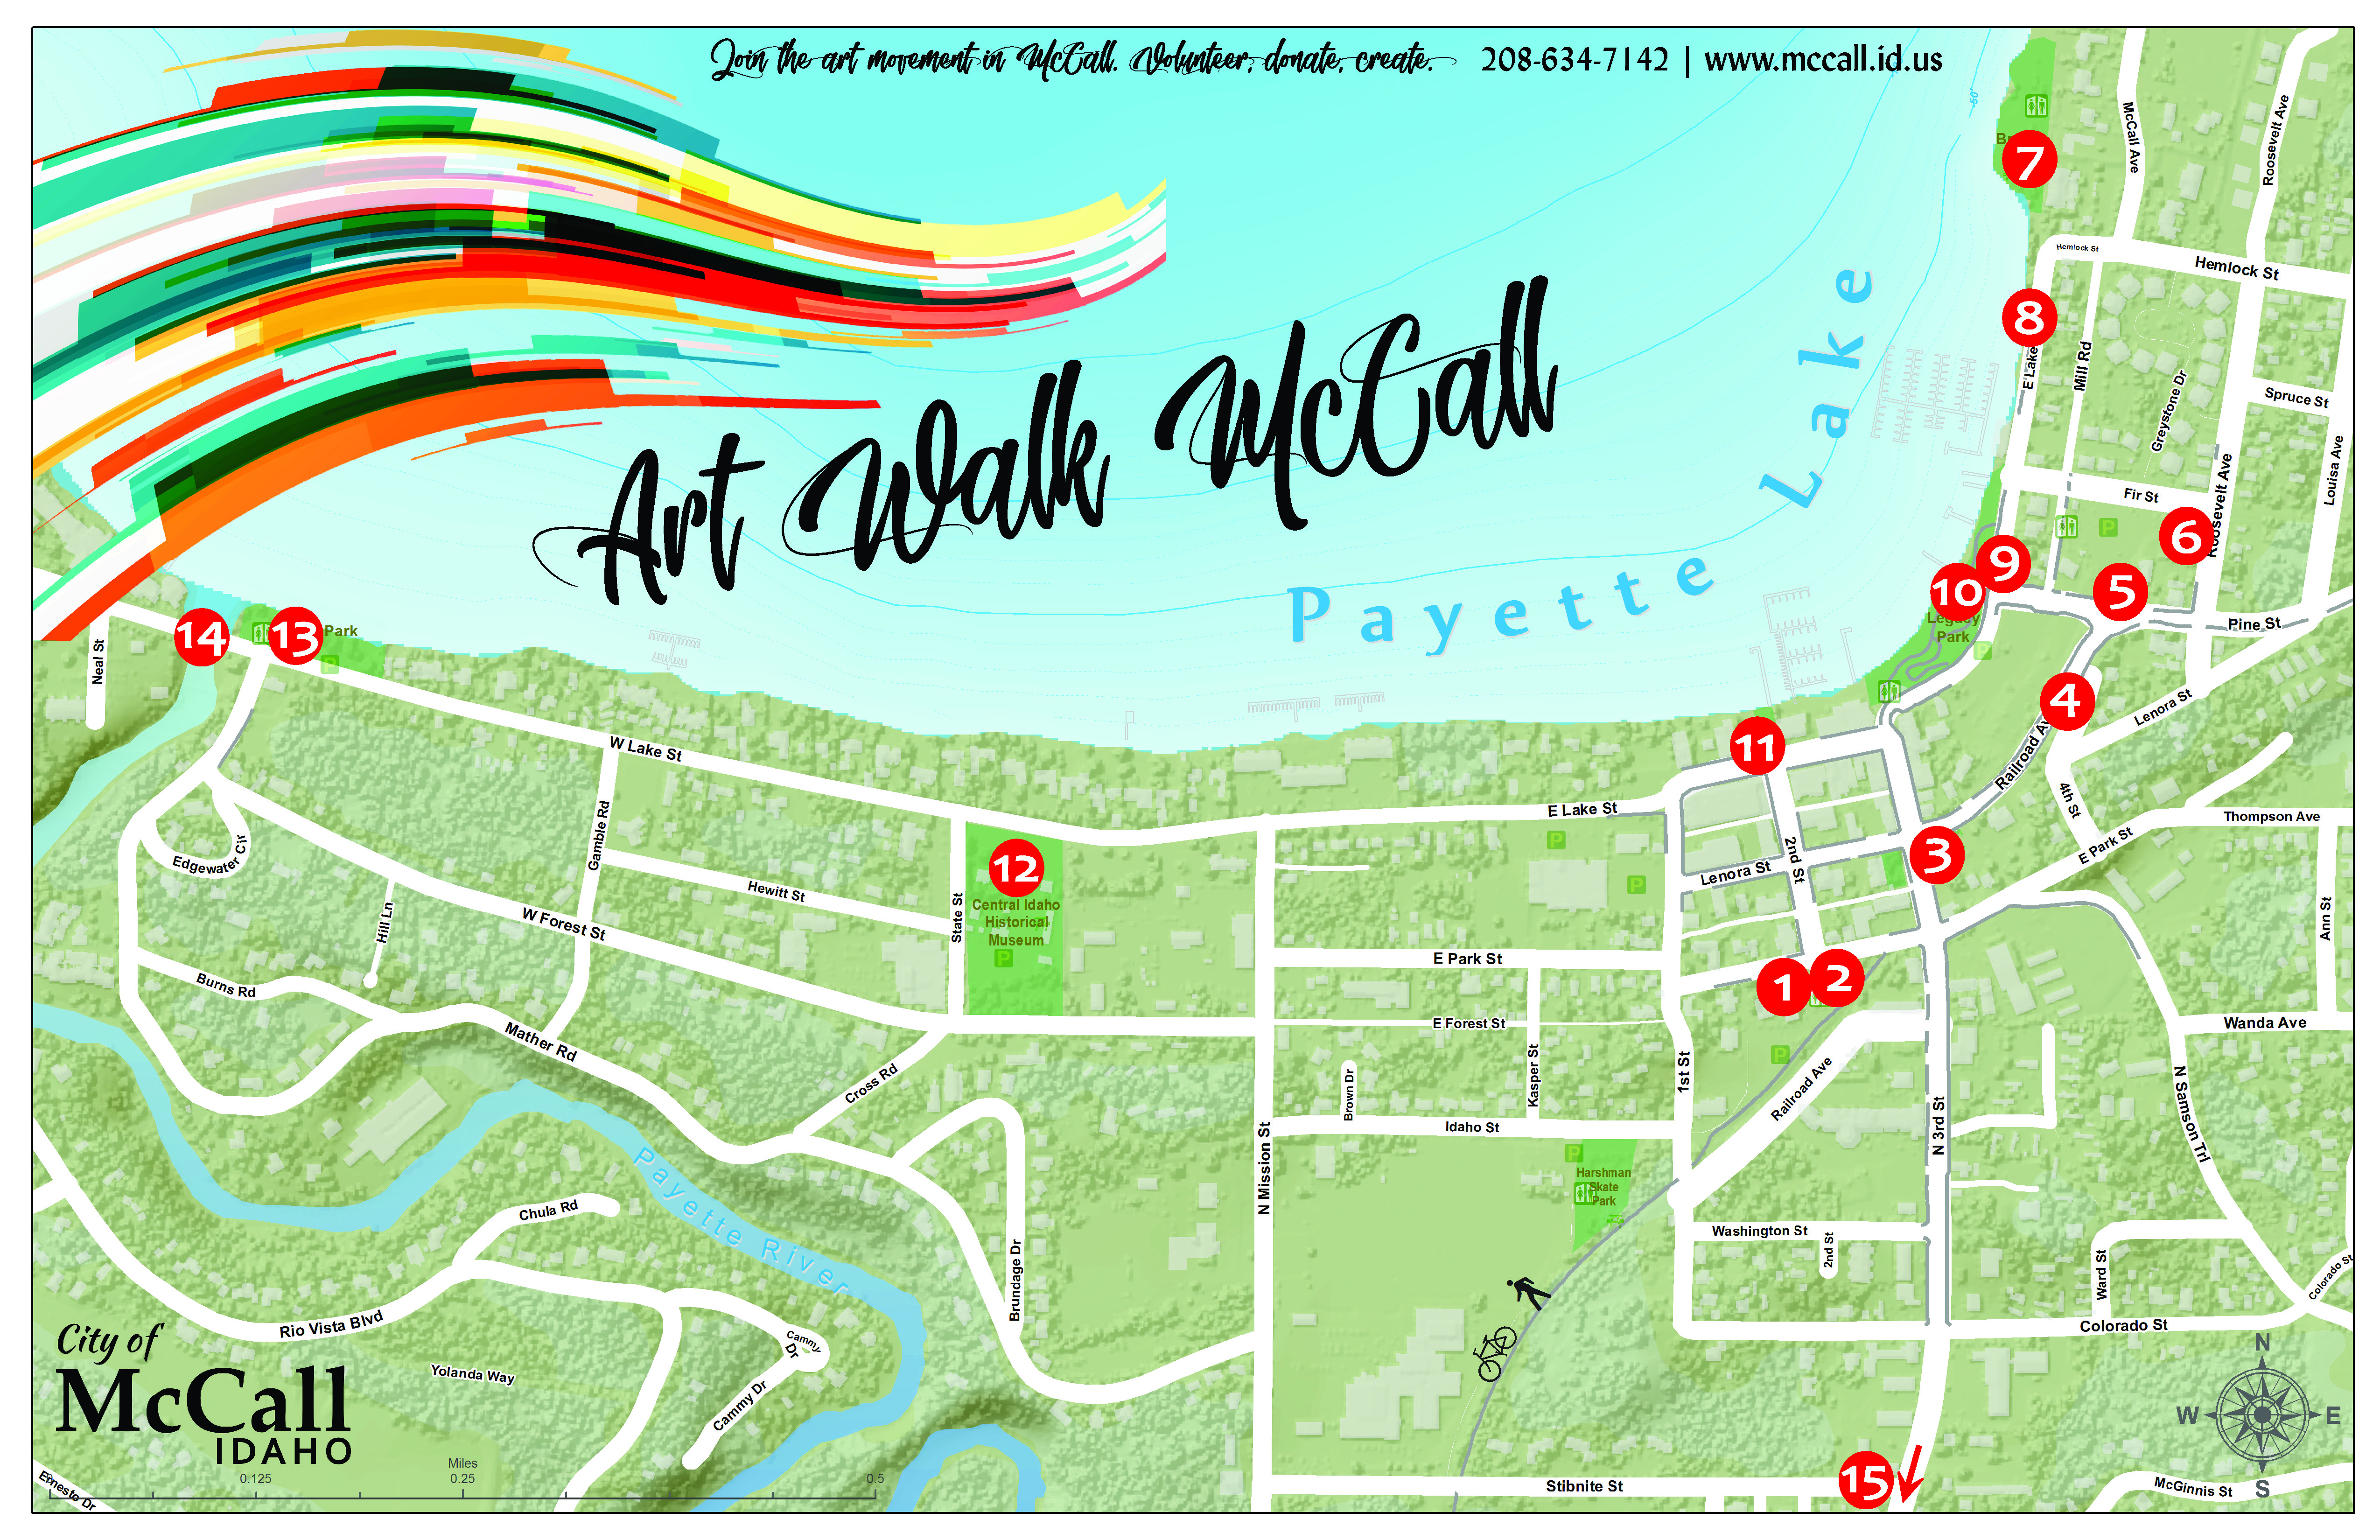 Official Website of McCall, Idaho New Self Guided Art Map on idaho road map, idaho on the map, idaho in the us, simple idaho map, idaho outline, mountain home idaho street map, chicago u.s. map, rocky mountains in idaho map, lower treasure valley idaho map, idaho politics, idaho on world map, idaho department of water resources, idaho department of natural resources, northern utah idaho map, northeastern idaho map, idaho usa, idaho tourism, star idaho on map, idaho known for, idaho on a map,